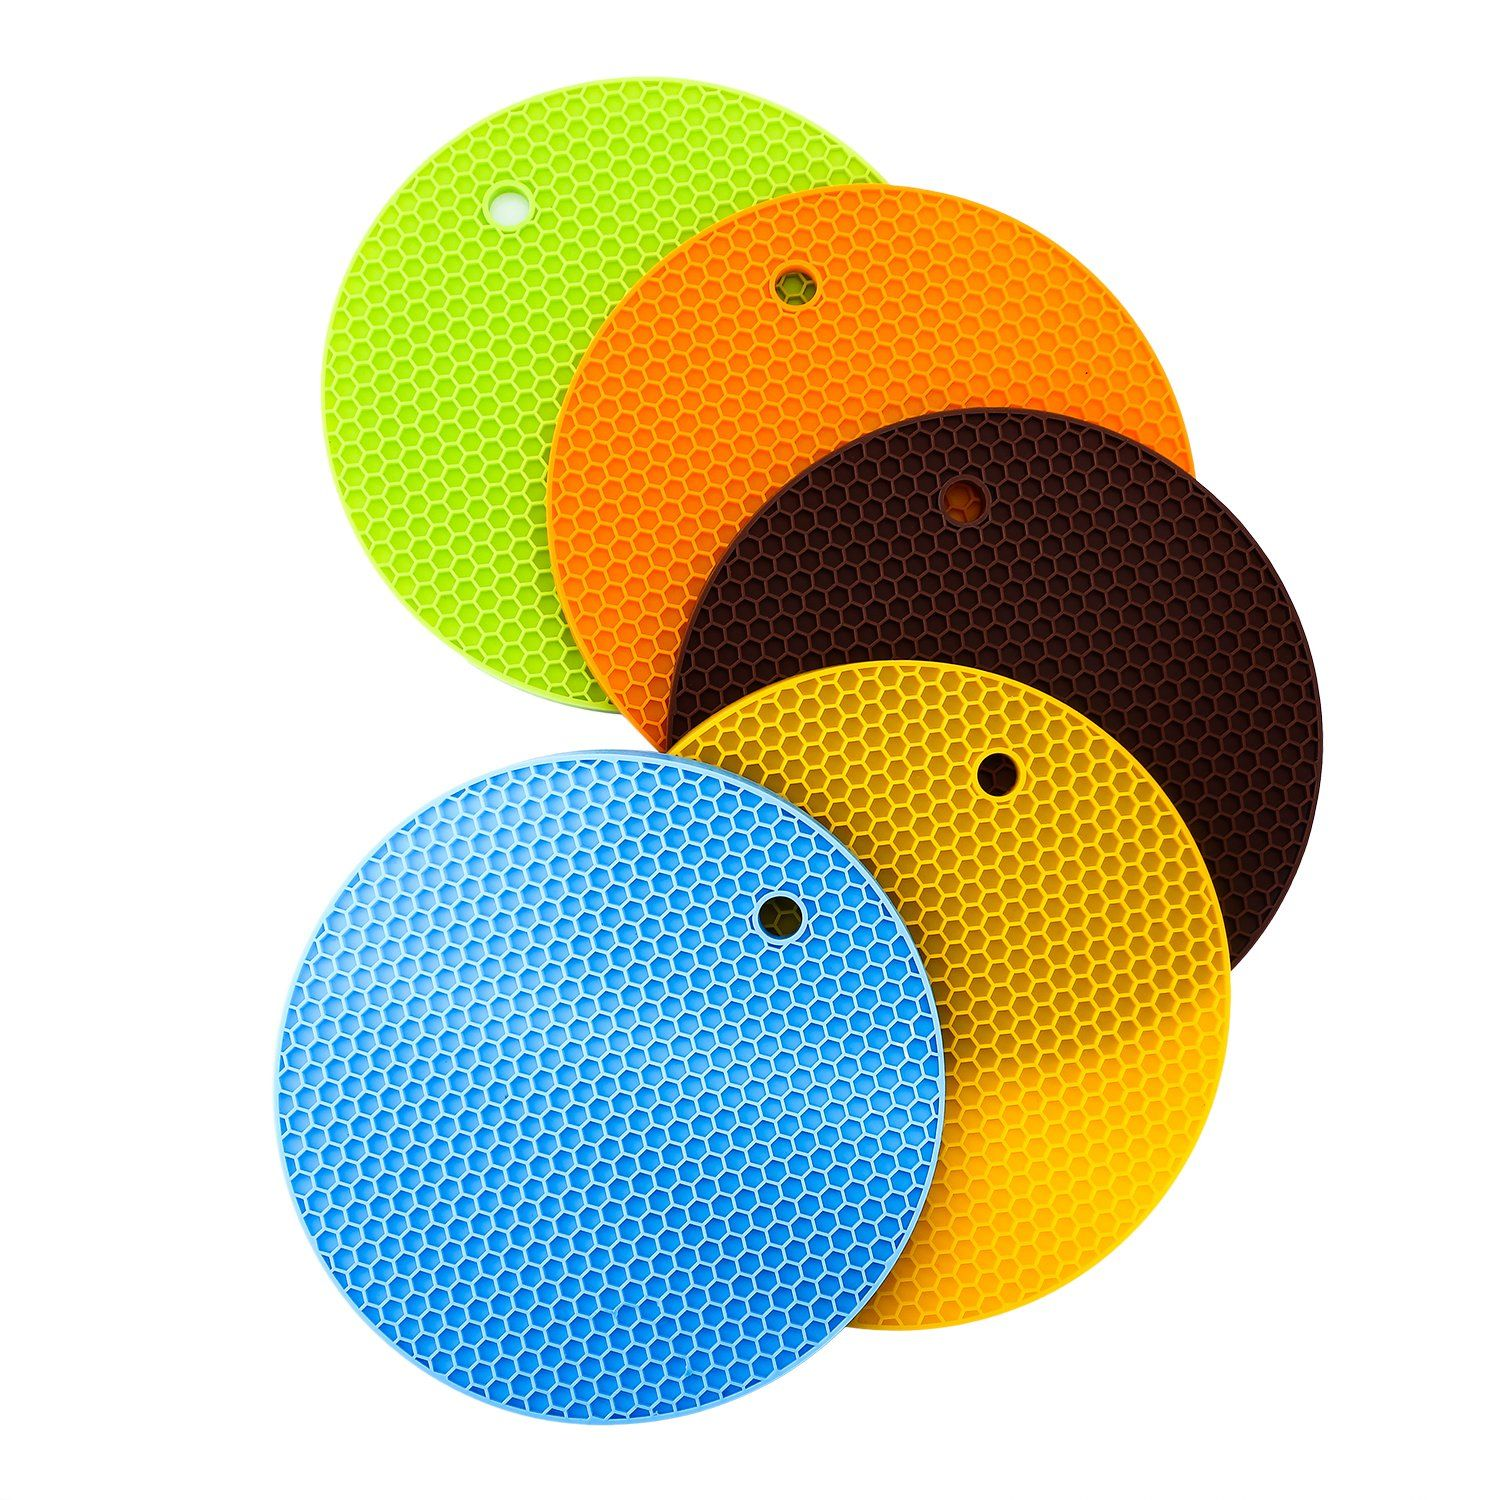 Silicone Pot Holders, DAMI Kitchen Trivet Mats And Hot Pads Insulated Non  Slip Flexible Durable